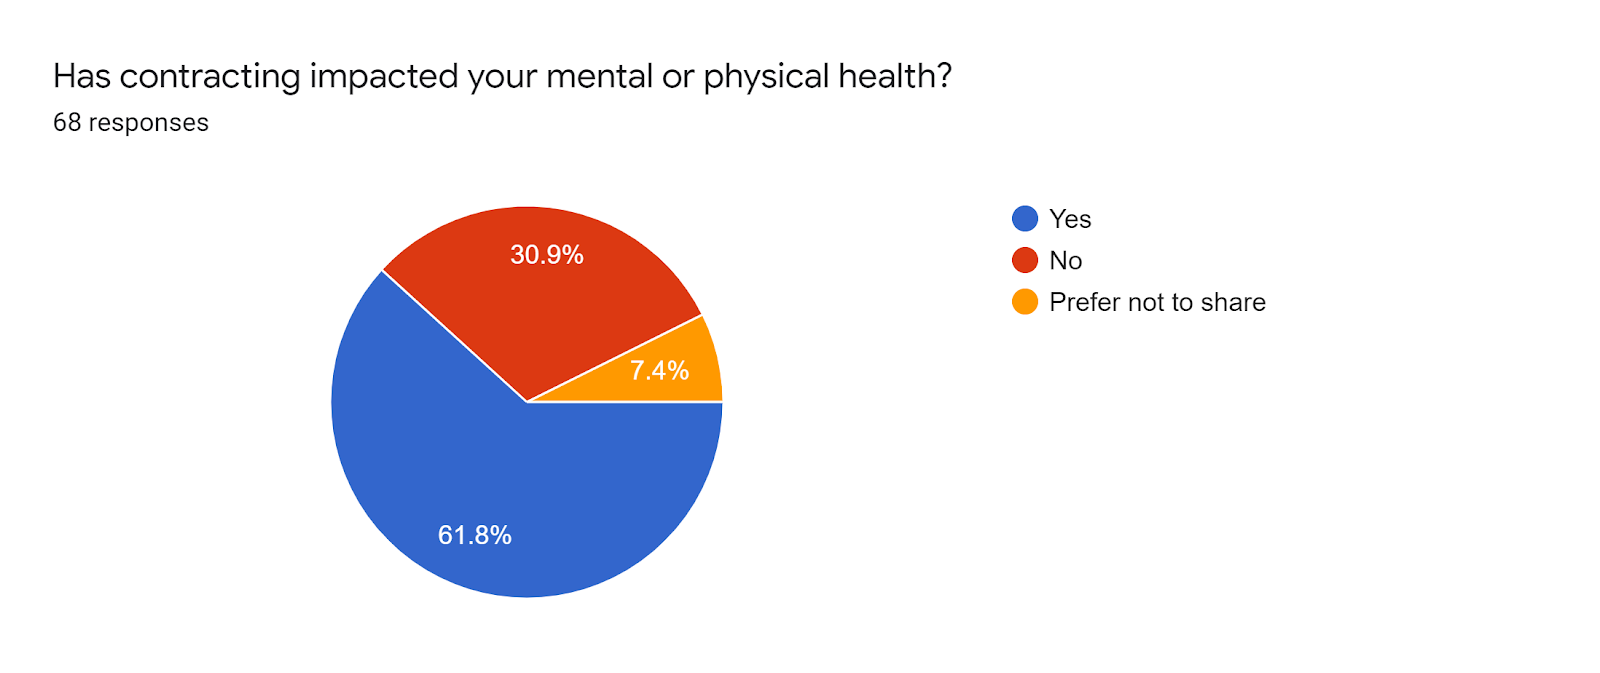 Forms response chart. Question title: Has contracting impacted your mental or physical health? . Number of responses: 68 responses.